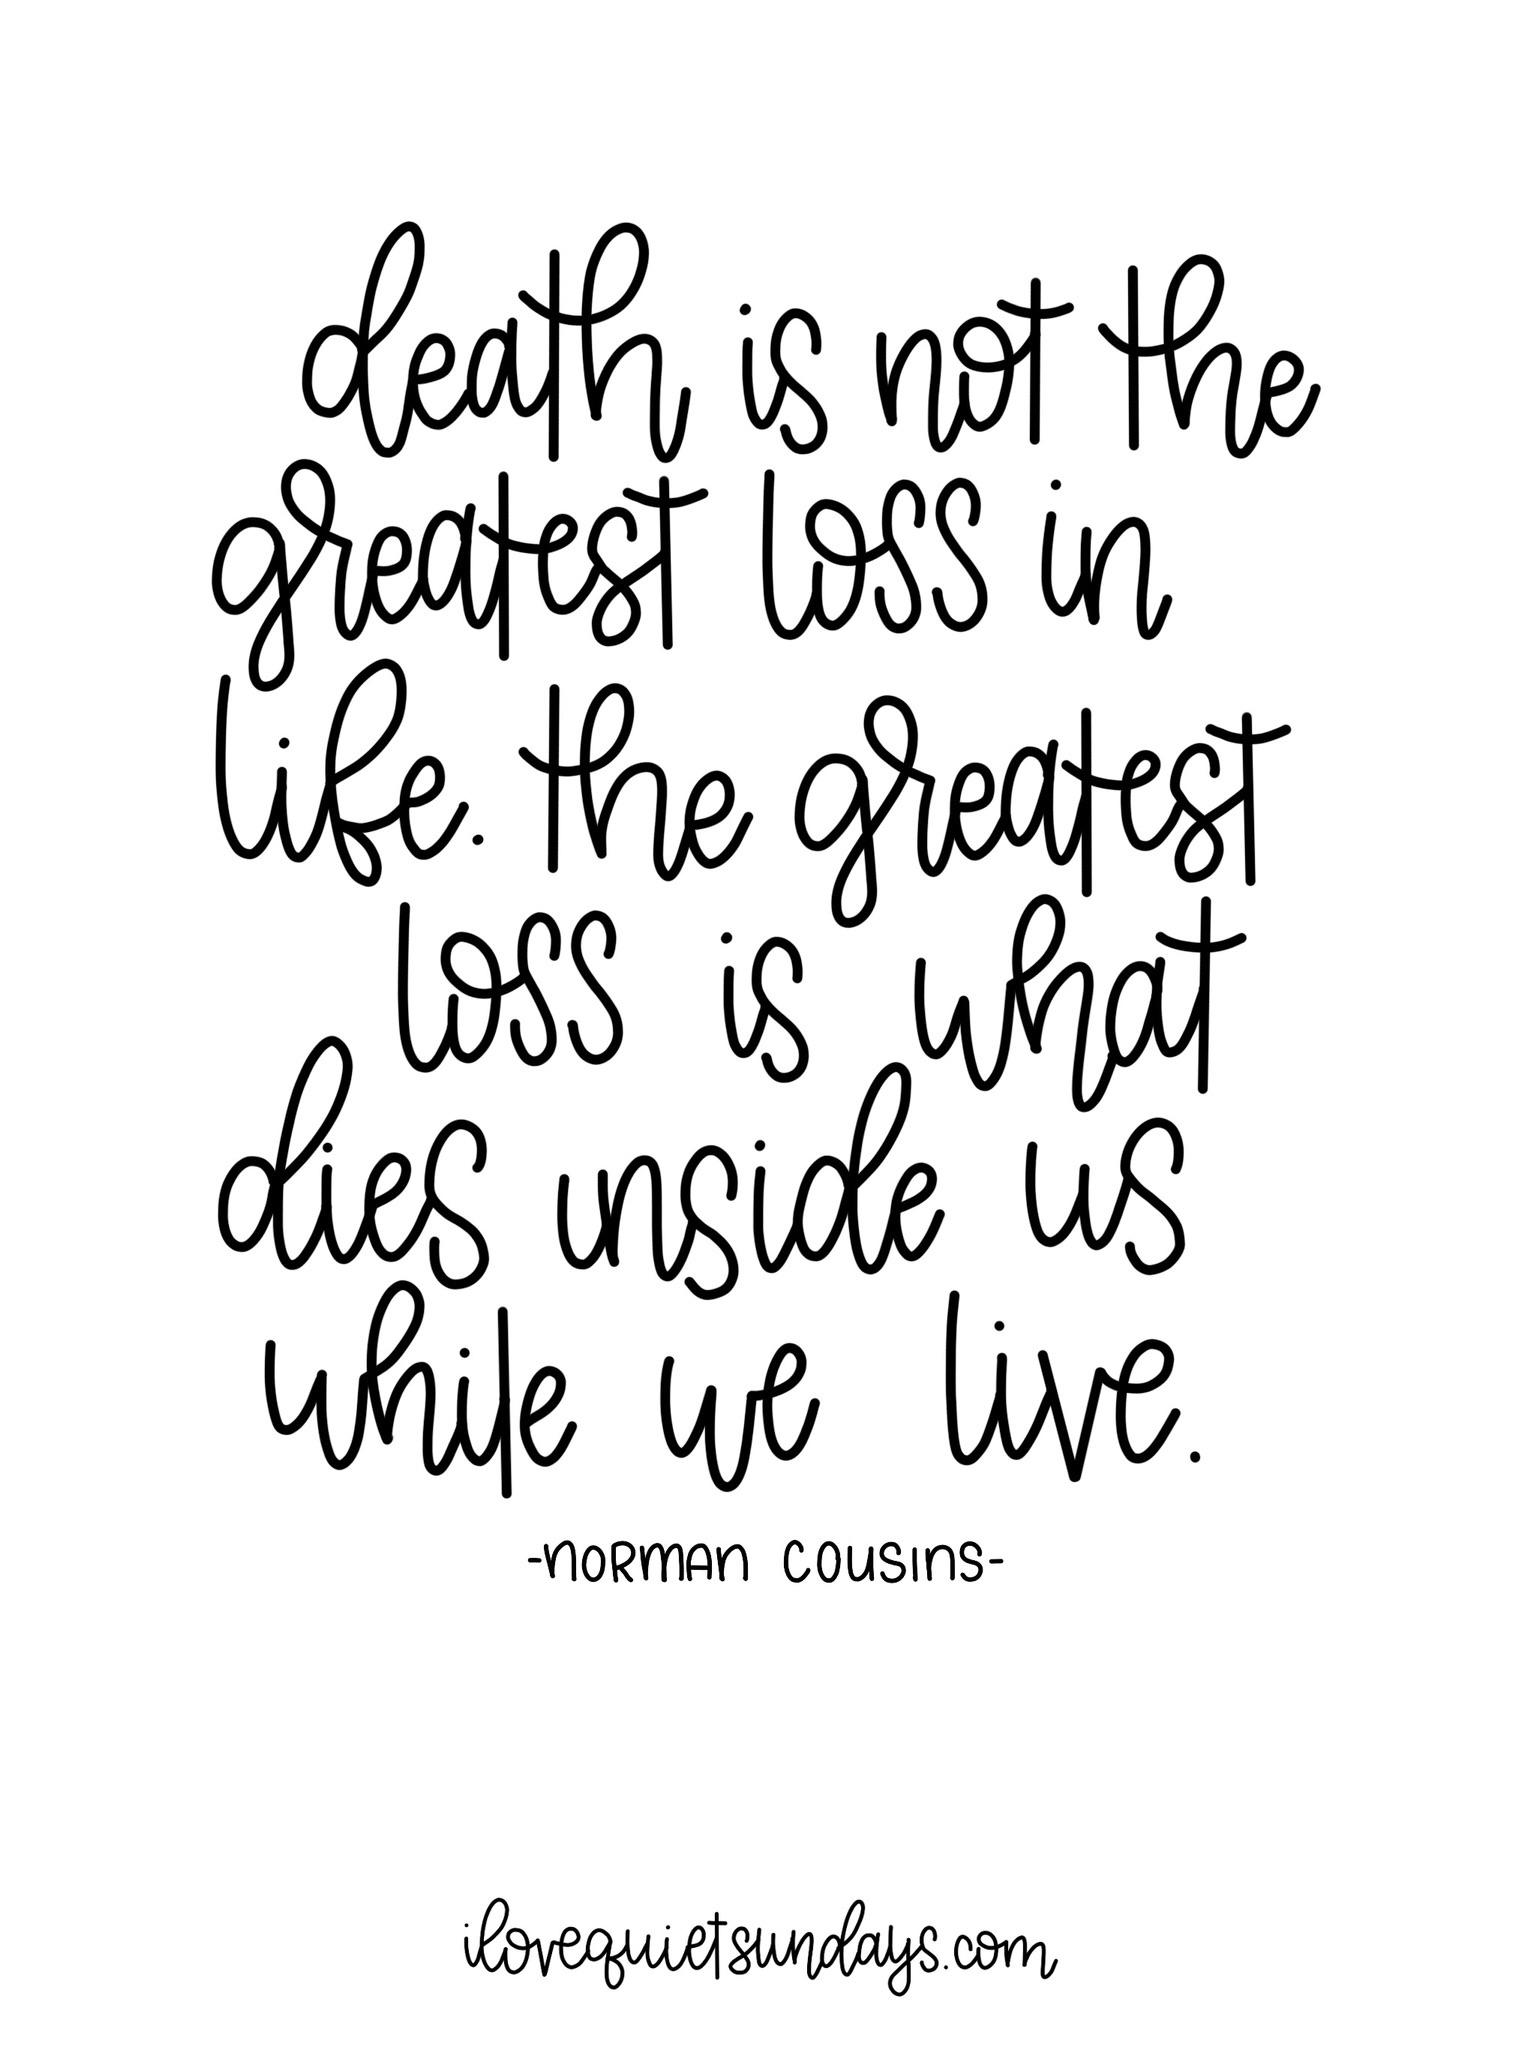 [image] Death is not the greatest loss ~